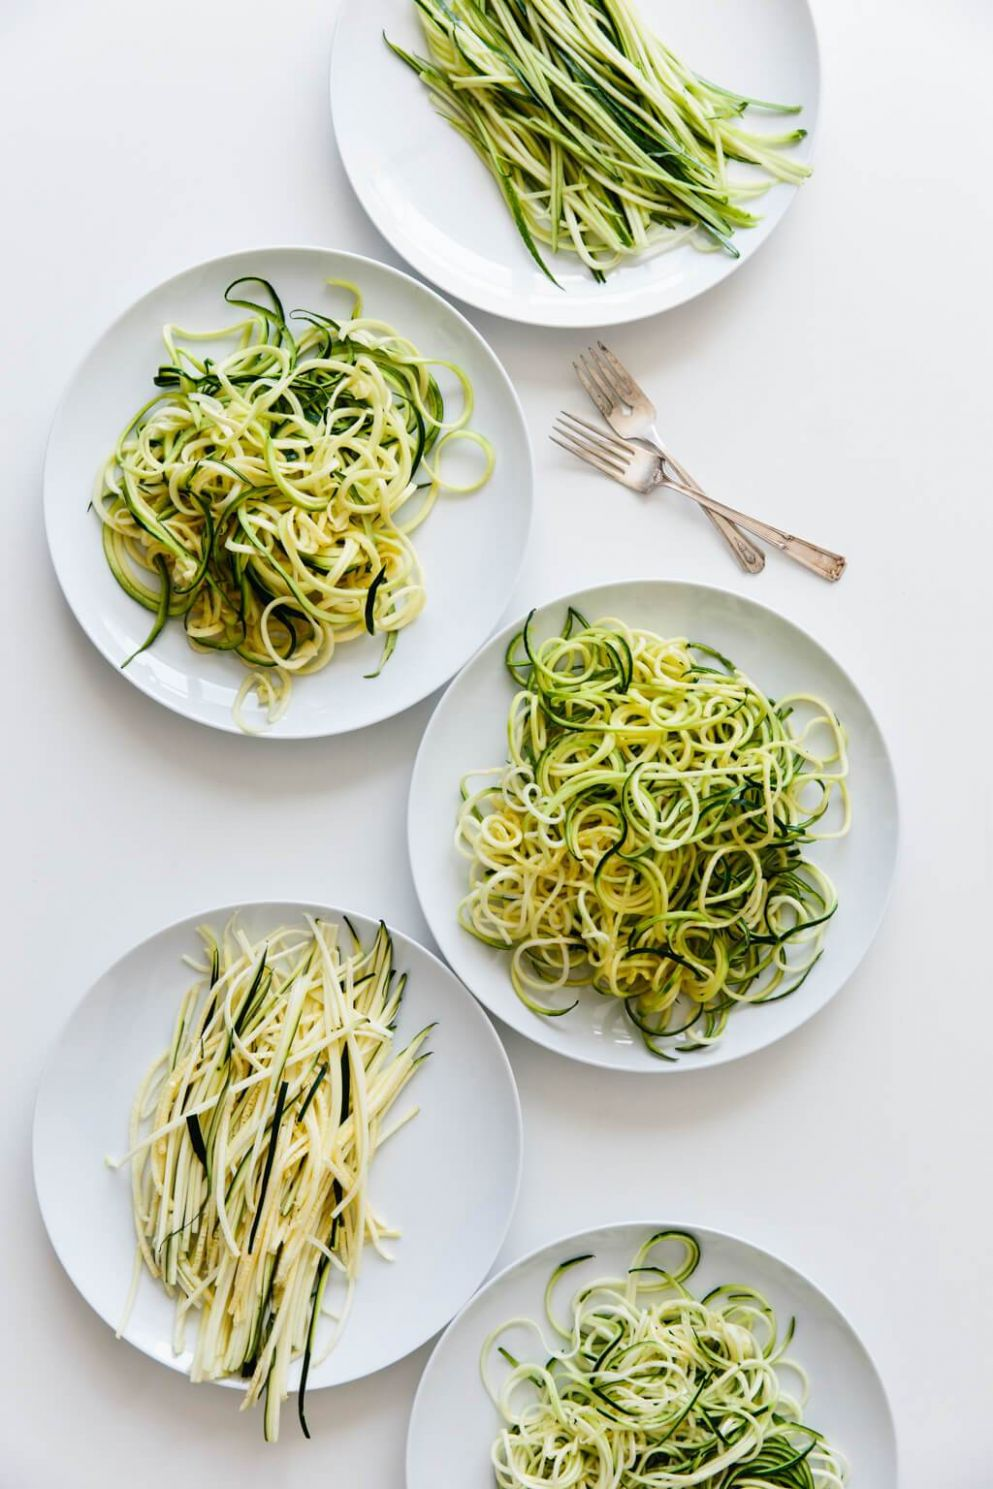 How to Make and Cook Zucchini Noodles (Zoodles) - Beginner's Guide ...